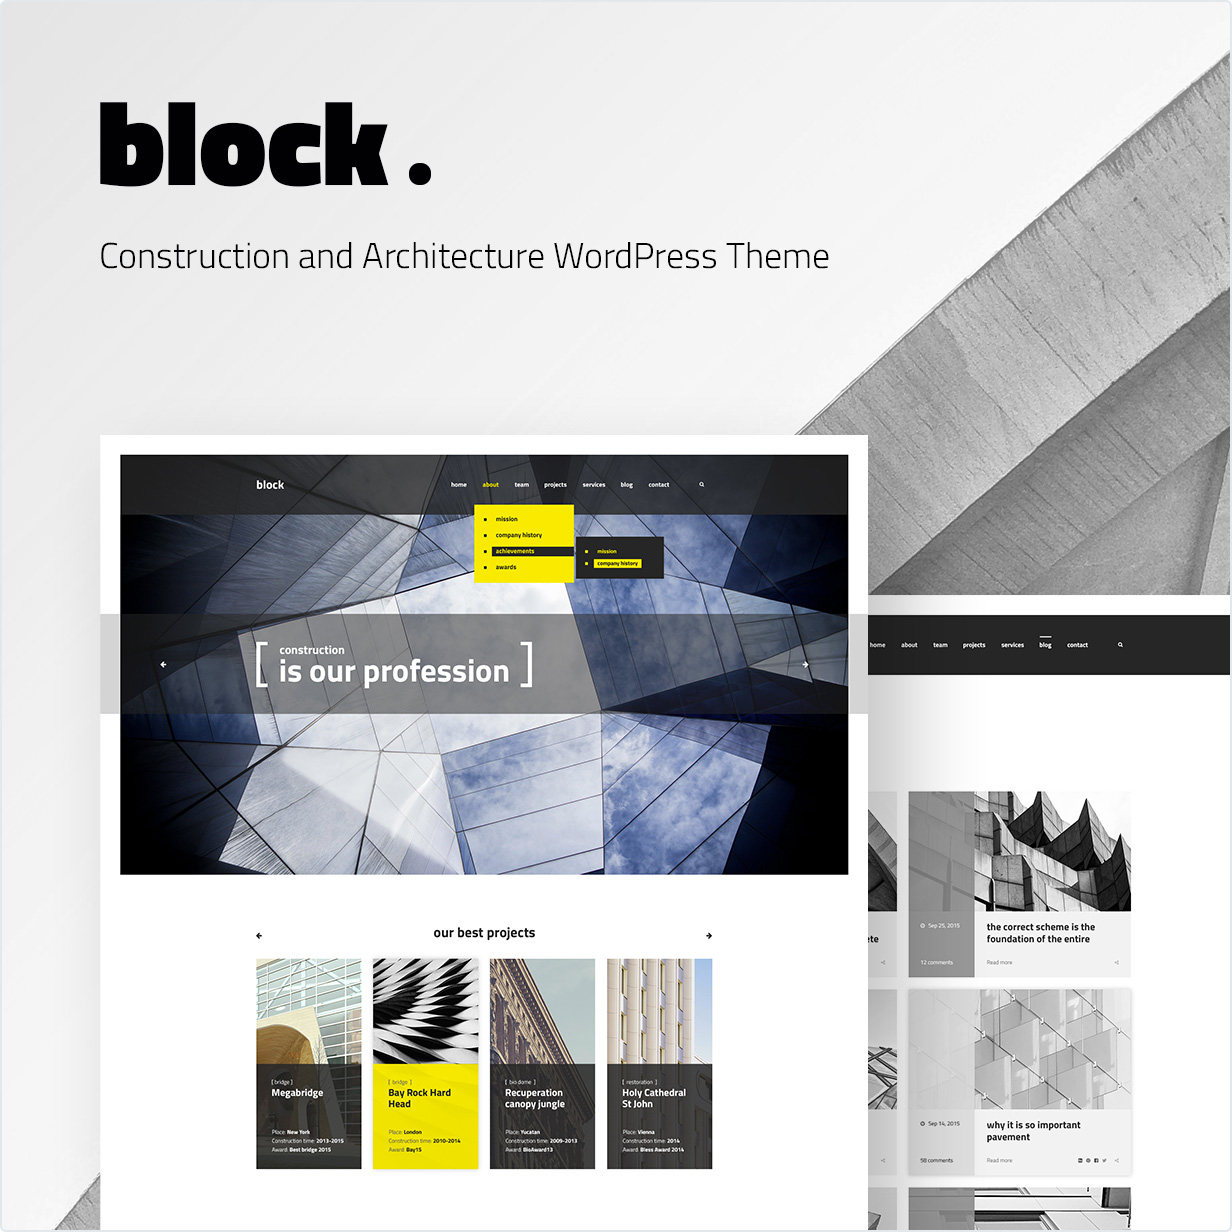 Attirant Construction And Architecture WordPress Theme Block